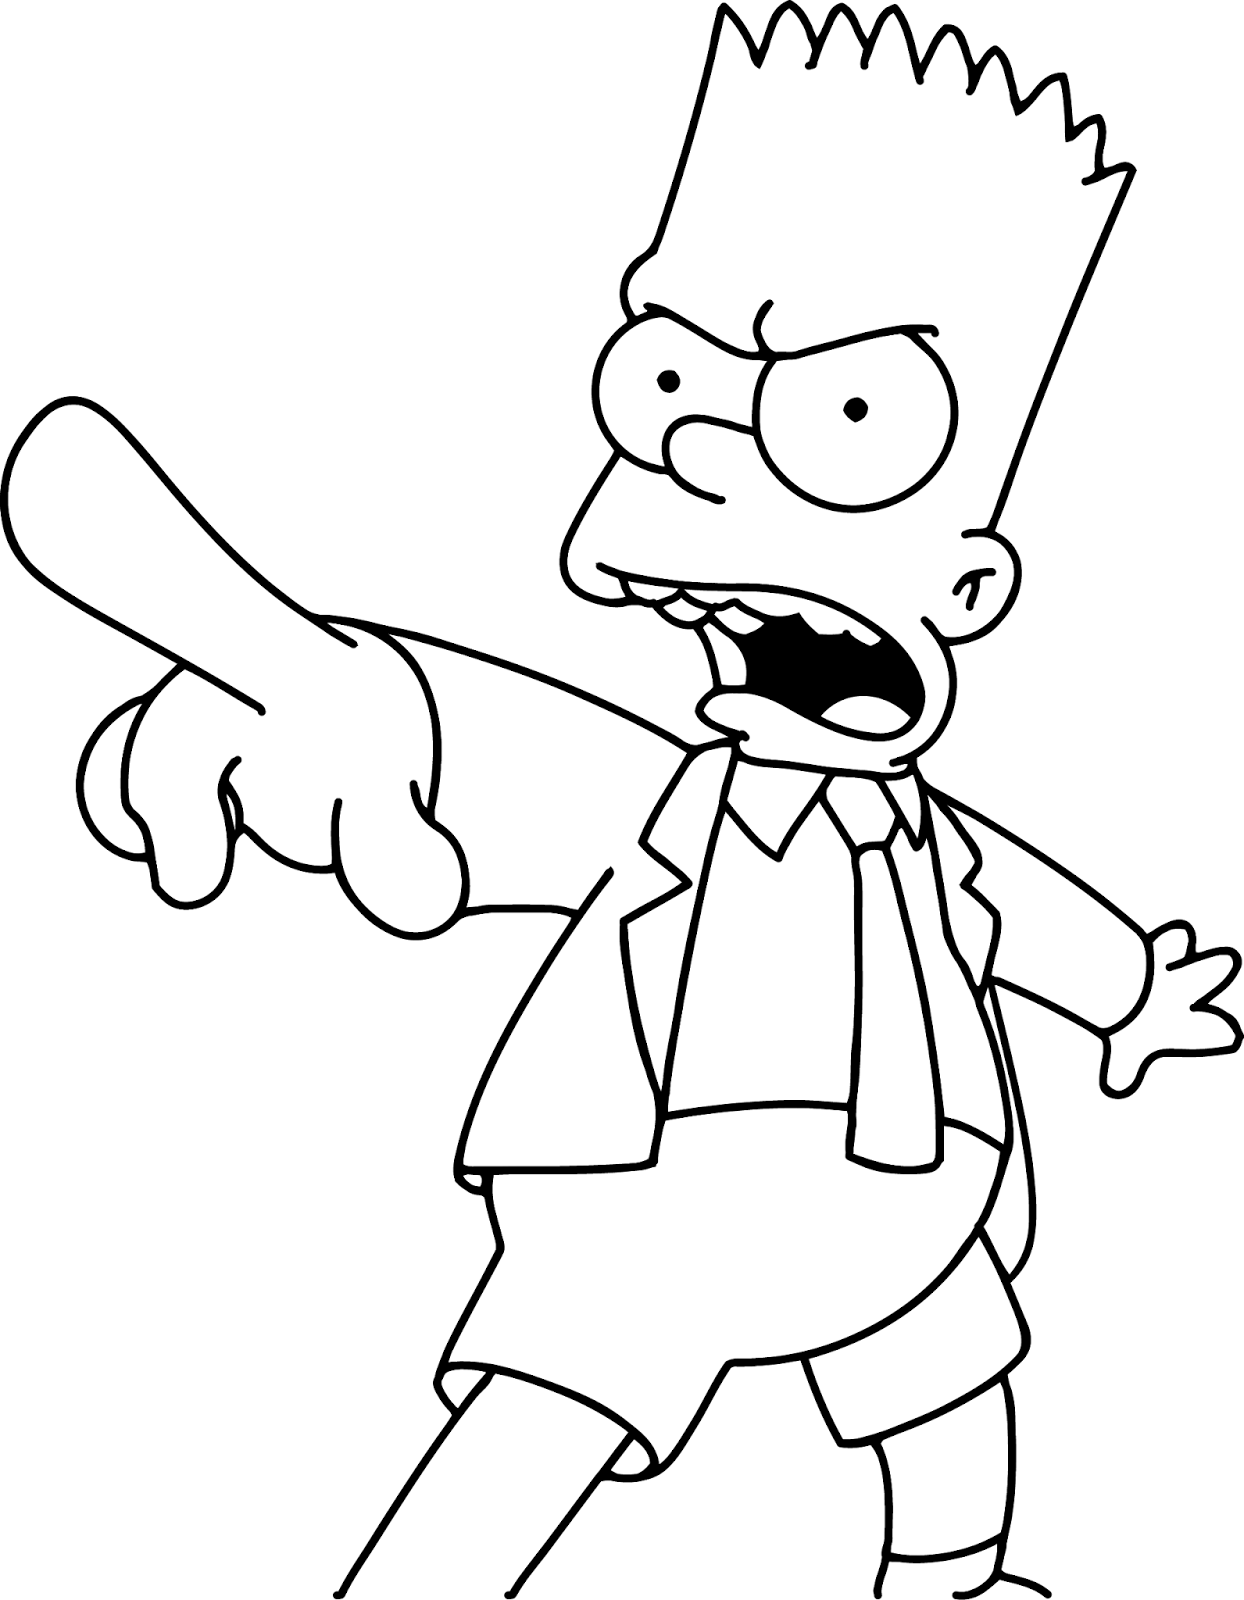 simpson coloring pages free printable simpsons coloring pages for kids coloring simpson pages